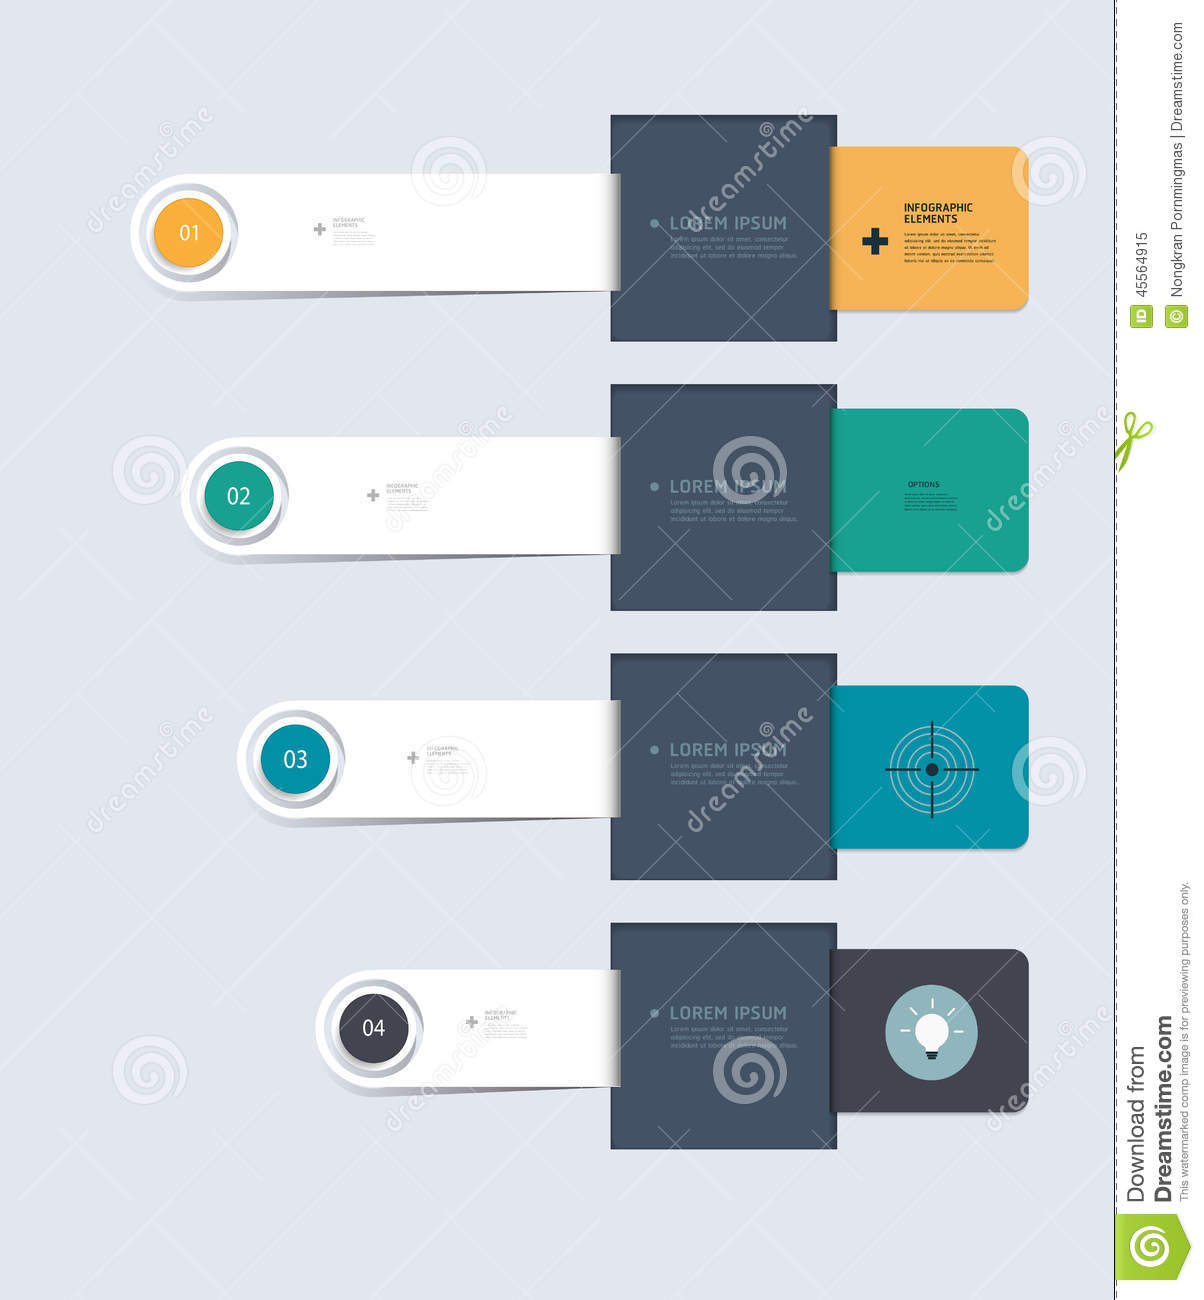 minimal infographic elements step by step template design stock